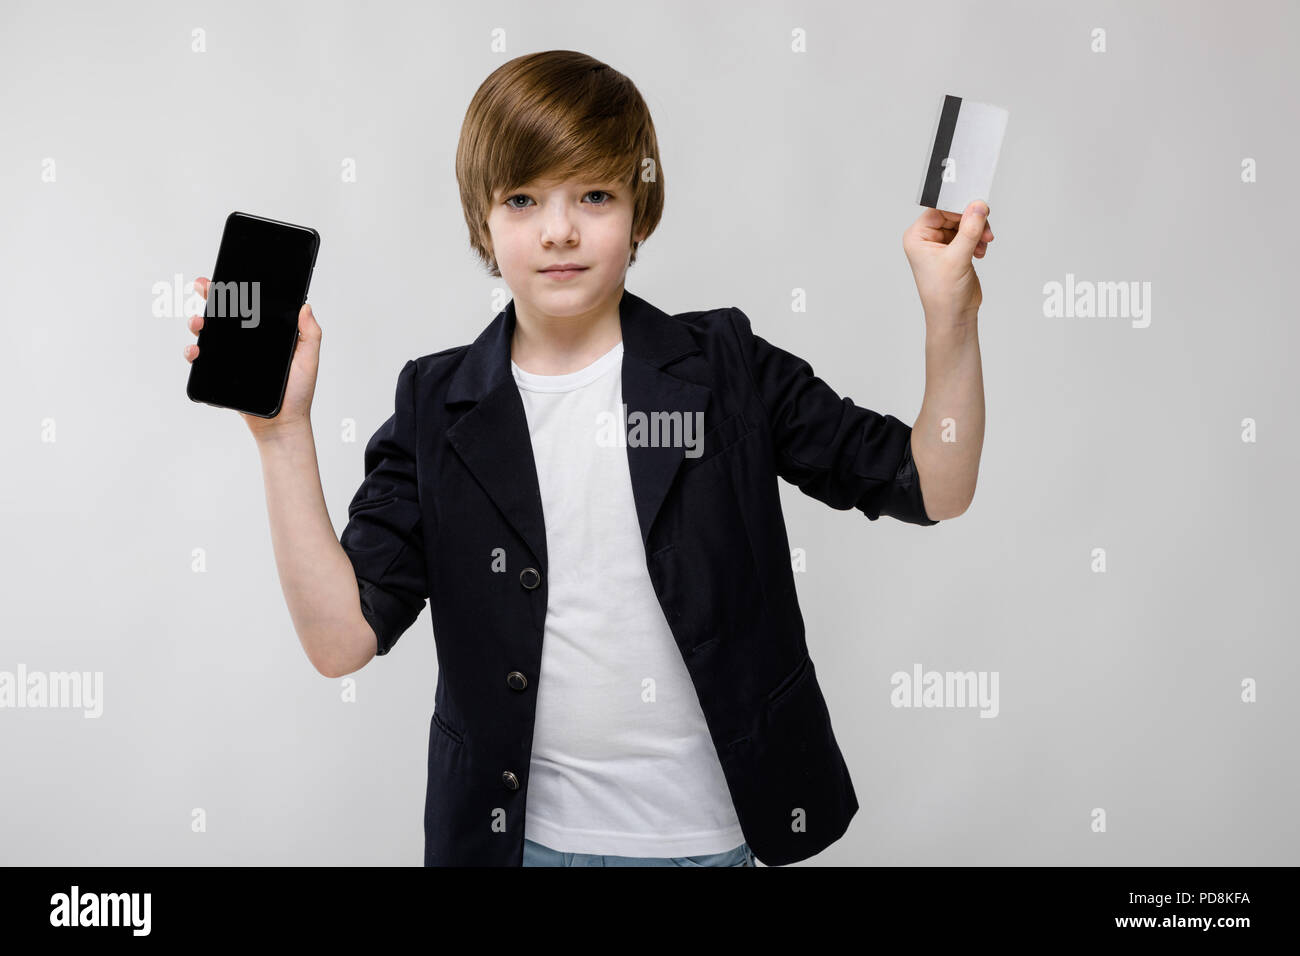 Cute boy with telephone and card - Stock Image